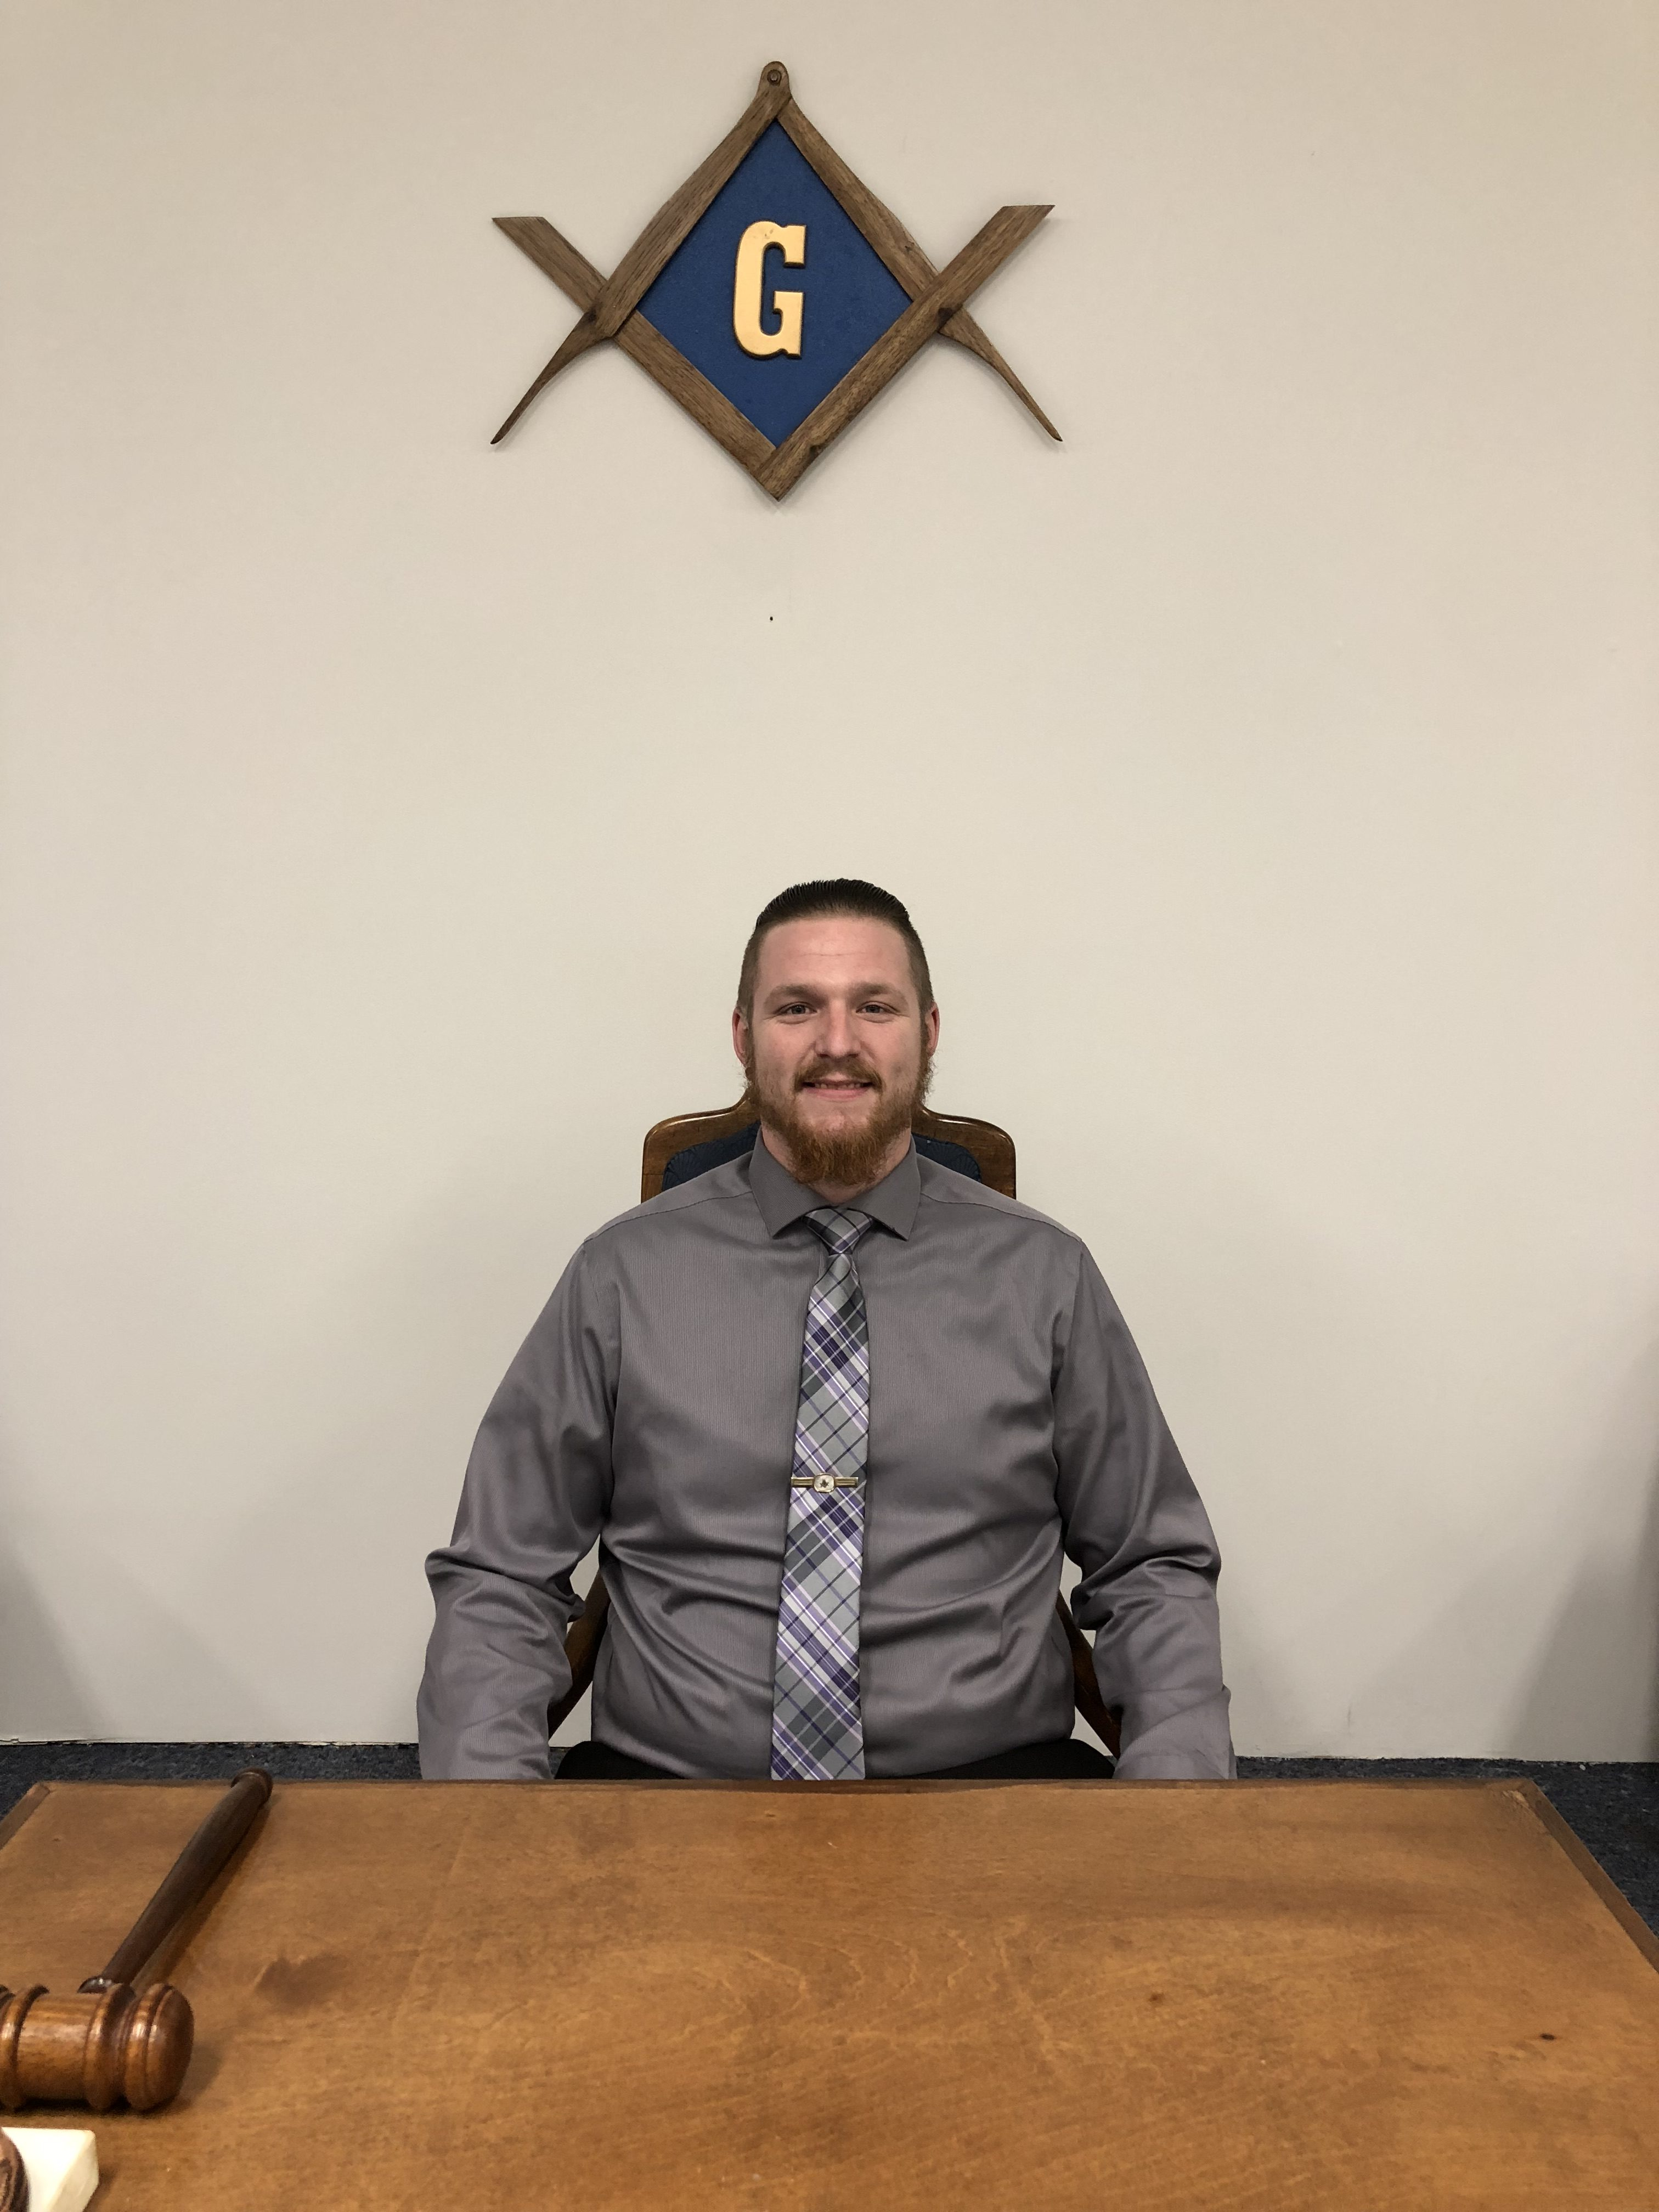 Officers – Welcome to Beech Lodge #240